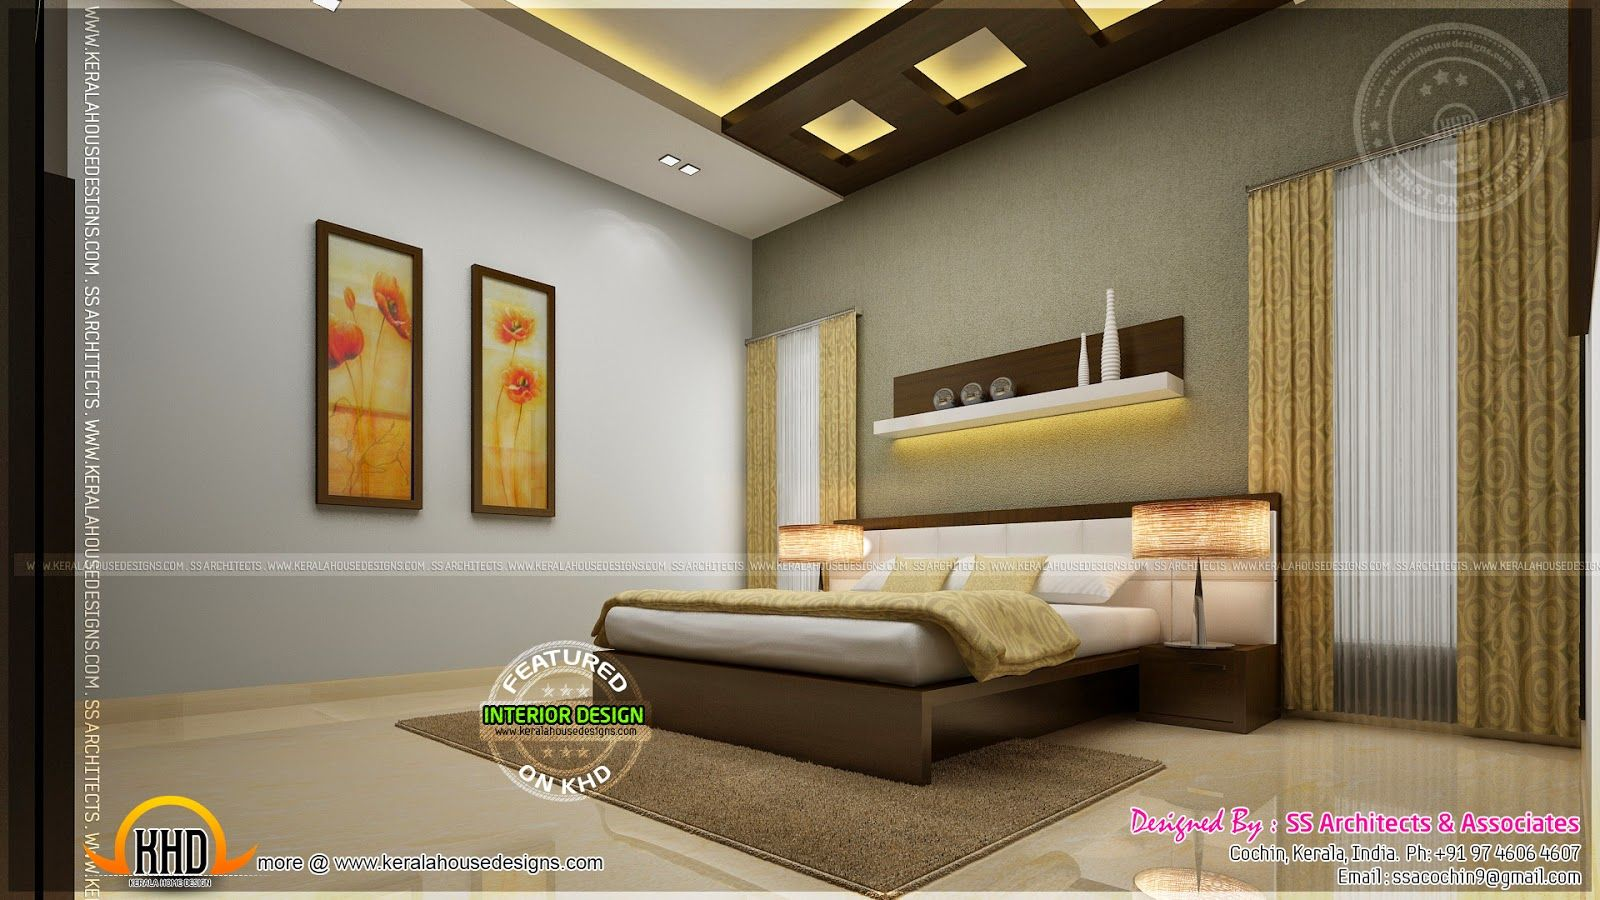 Indian master bedroom interior design google search for 10x10 dining room ideas